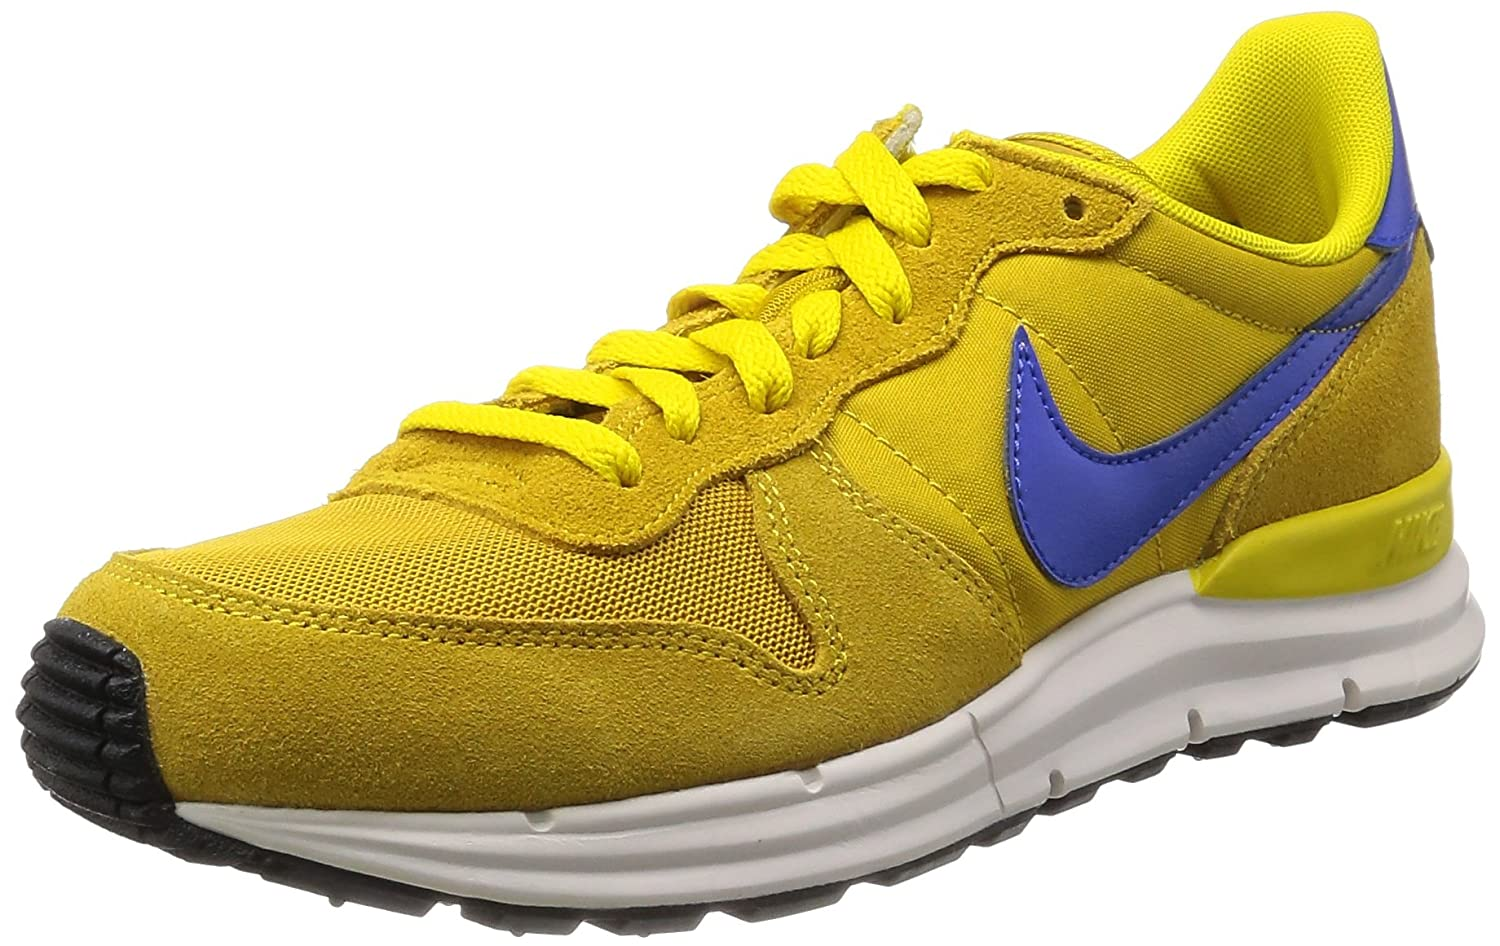 Nike Lunar Internationalist Yellow Mens Trainers Size 10 UK: Amazon.co.uk:  Shoes & Bags